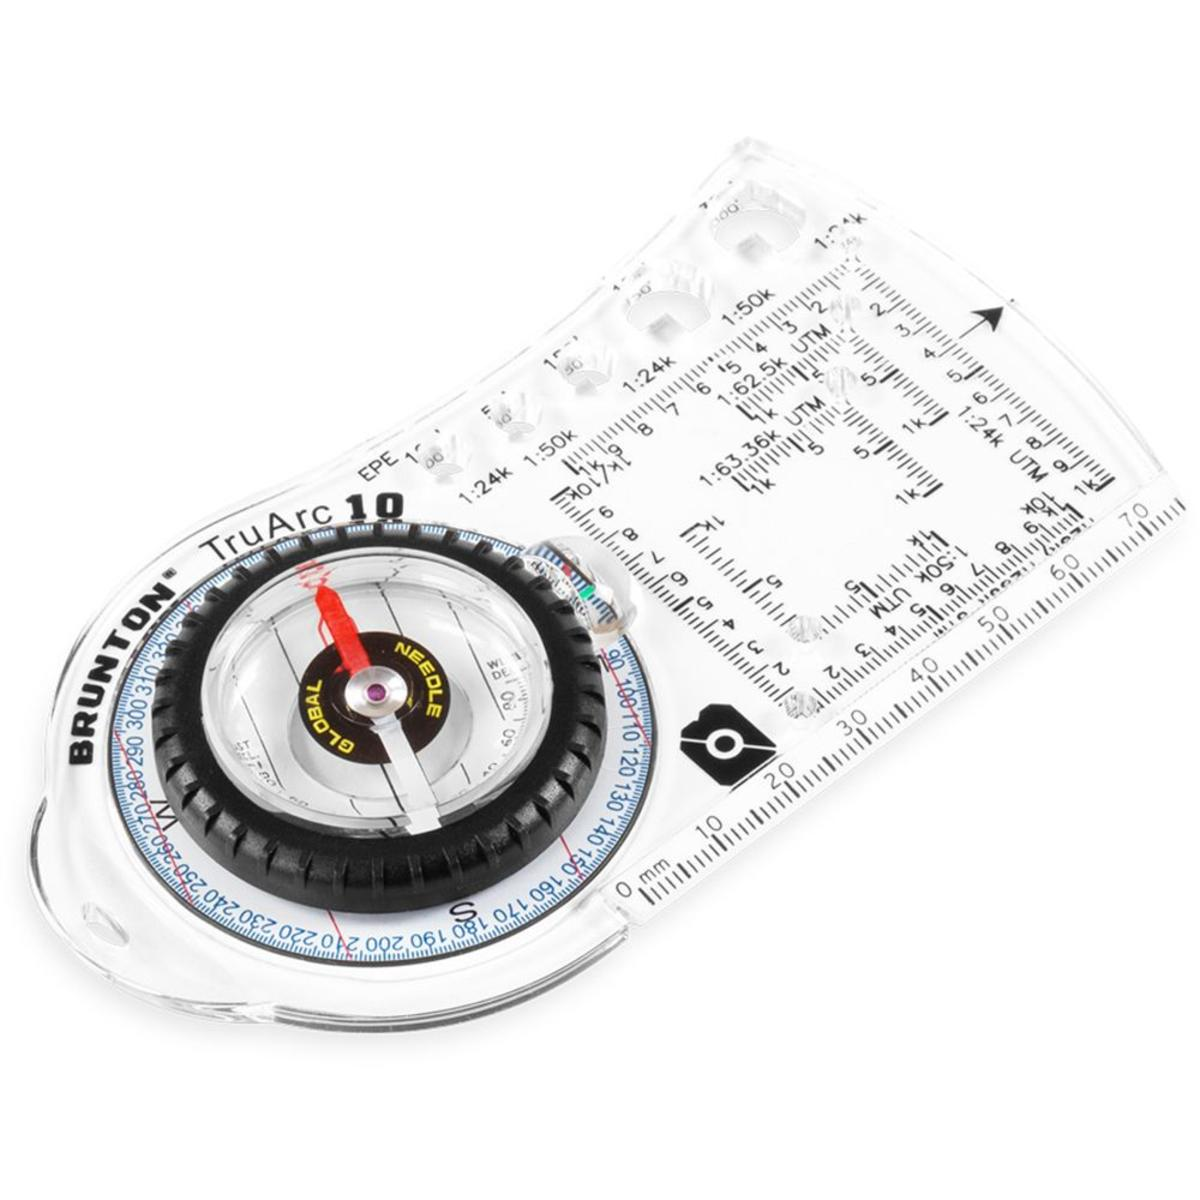 Brunton TruArc 10 Compass Luminescent